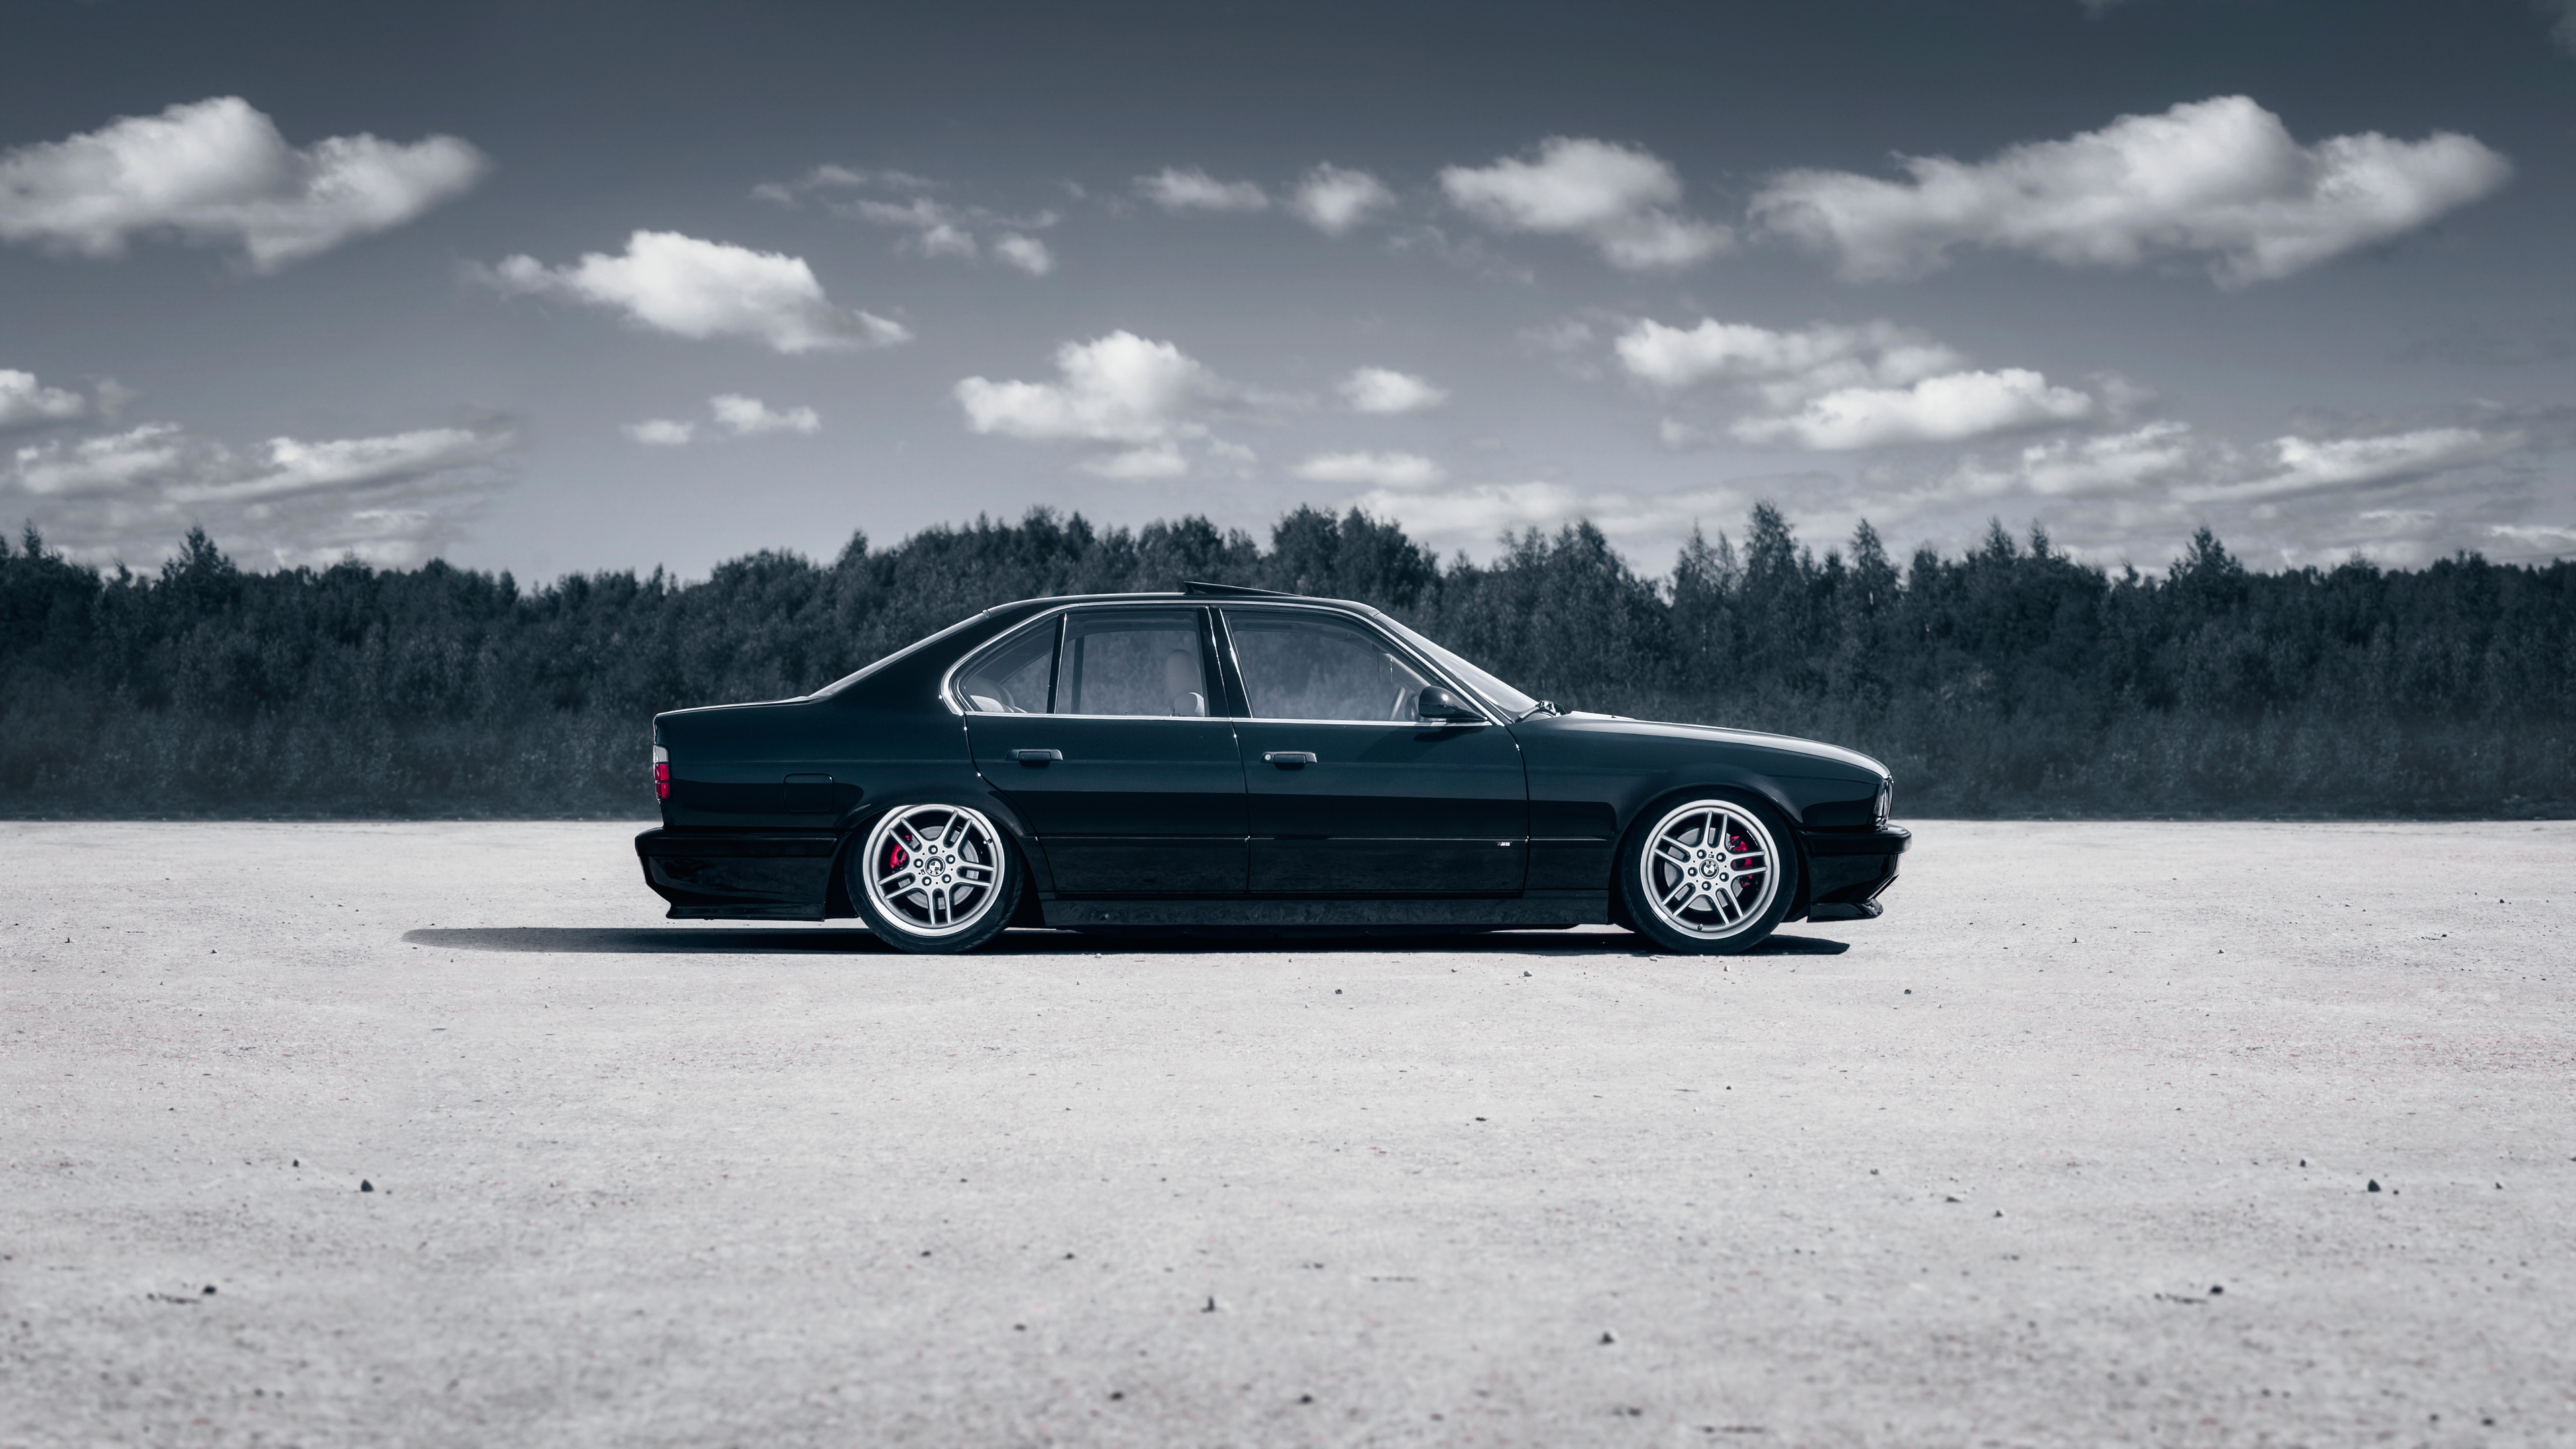 bmw 5 series e34 1569187953 - BMW 5 Series E34 - hd-wallpapers, cars wallpapers, bmw wallpapers, 5k wallpapers, 4k-wallpapers